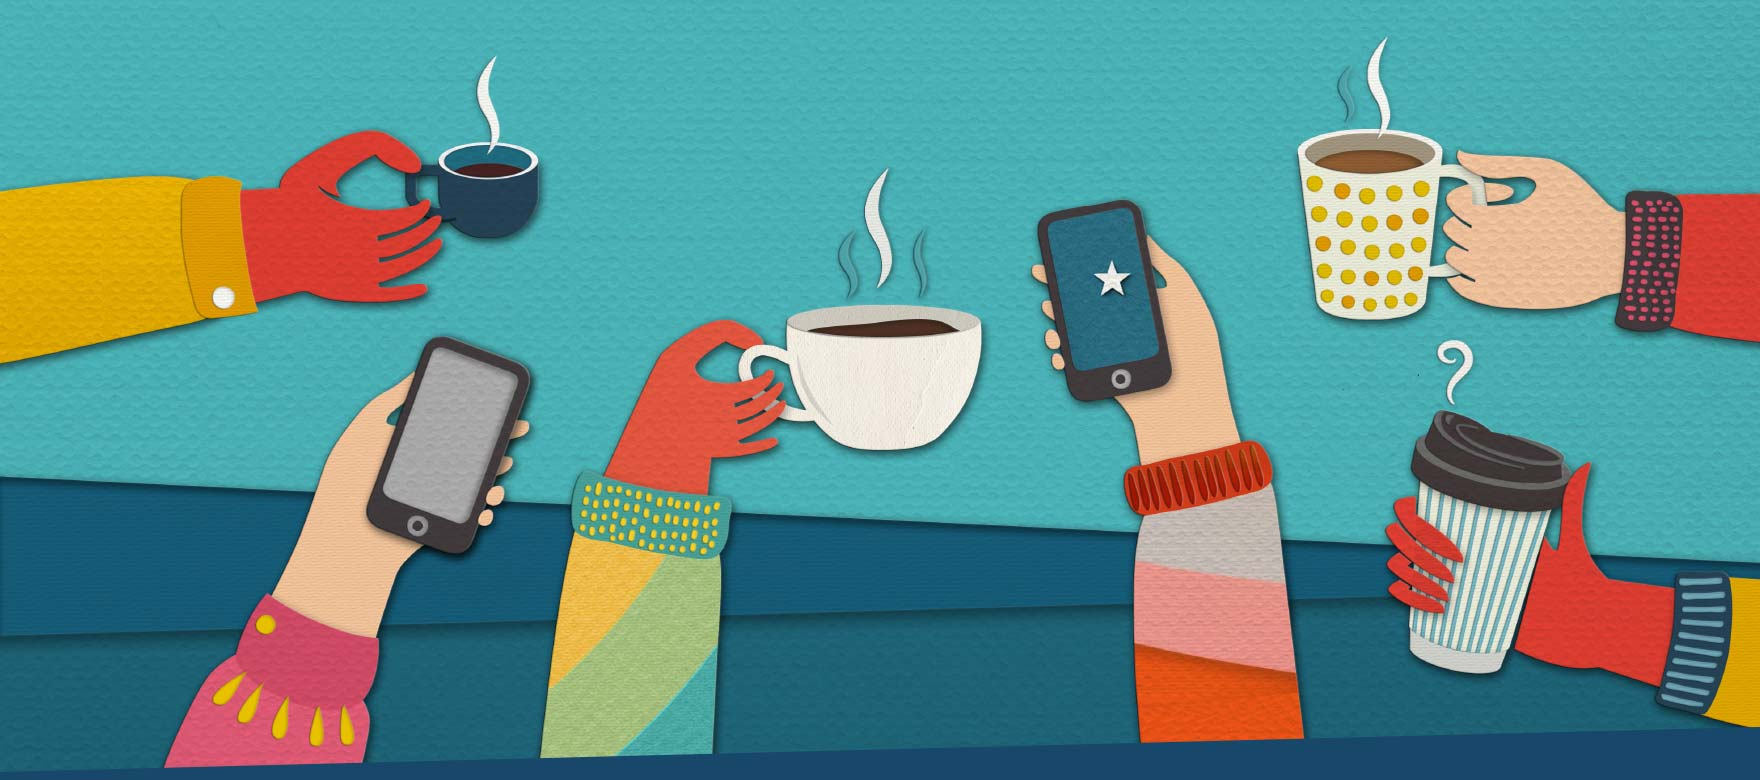 Coffees and smartphones